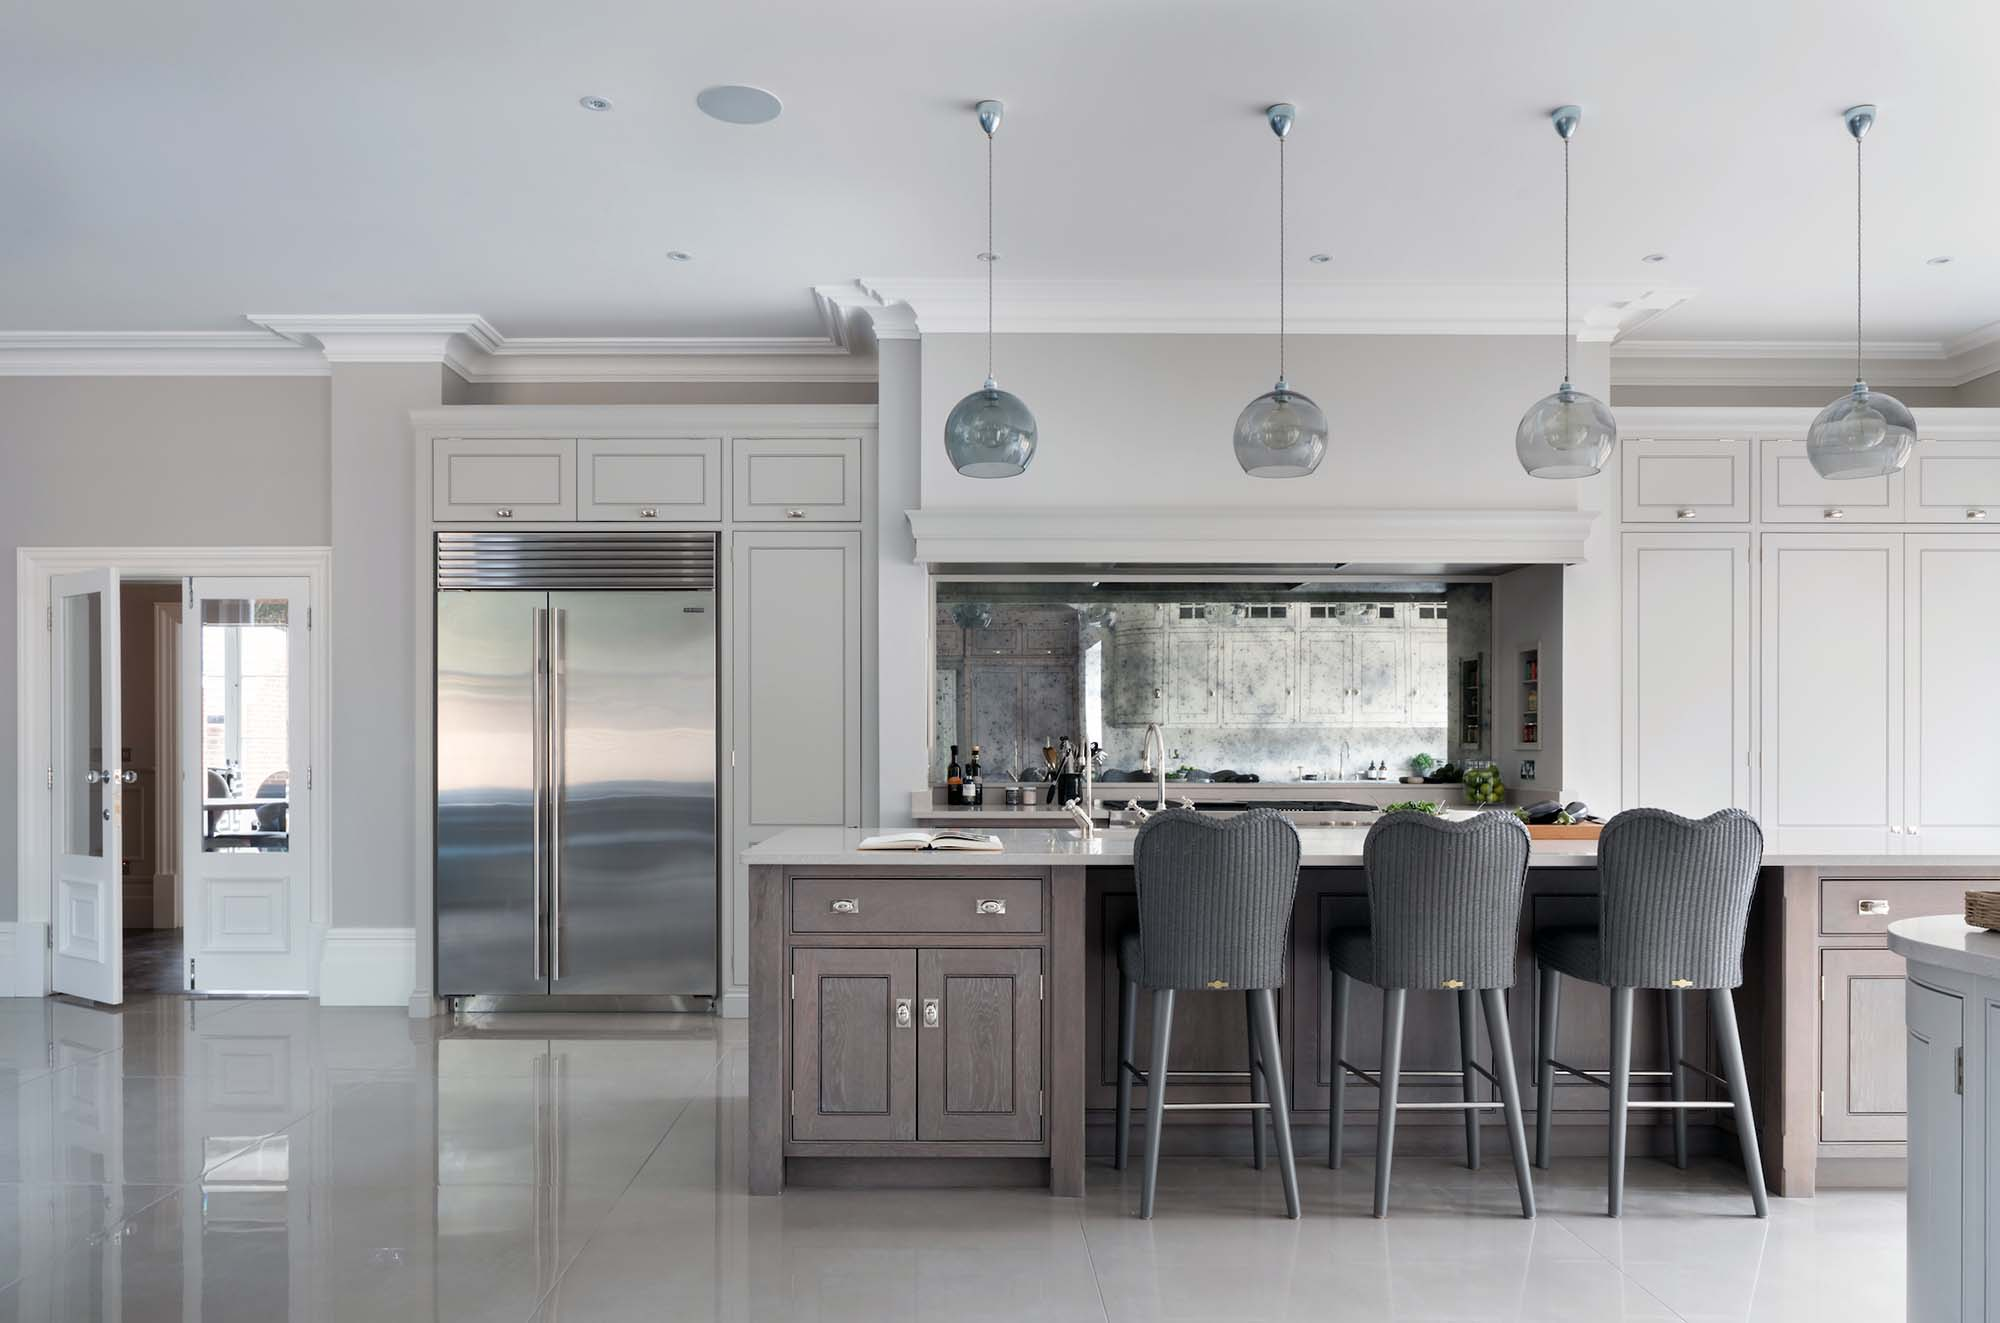 high end luxury kitchen appliances in a beautiful modern style white and gray kitchen